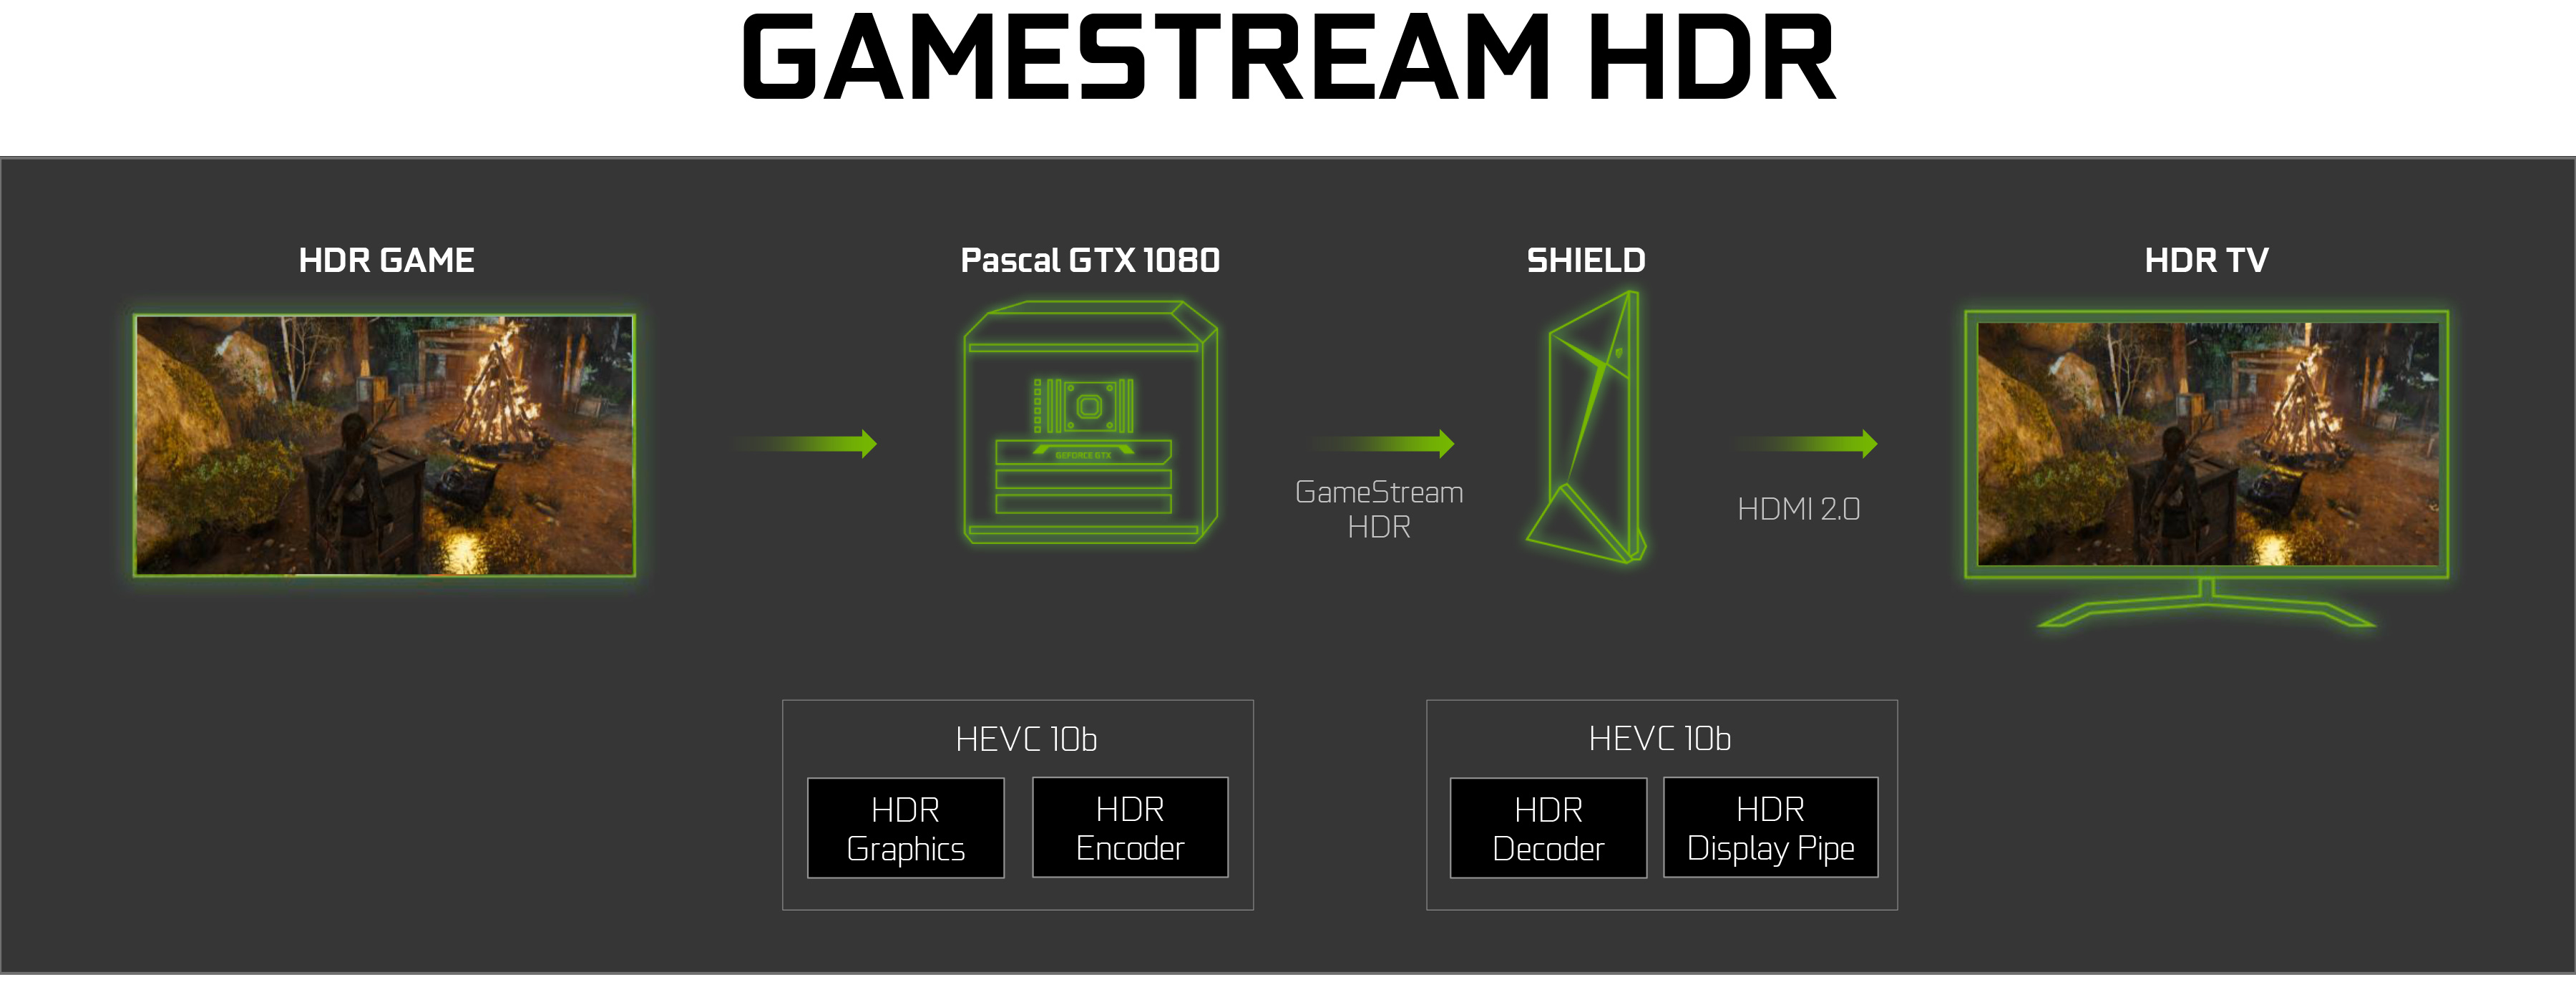 How To Unlock Hdr Graphics And 60fps: NVIDIA SHIELD Android TV Console Adds Support For Vudu